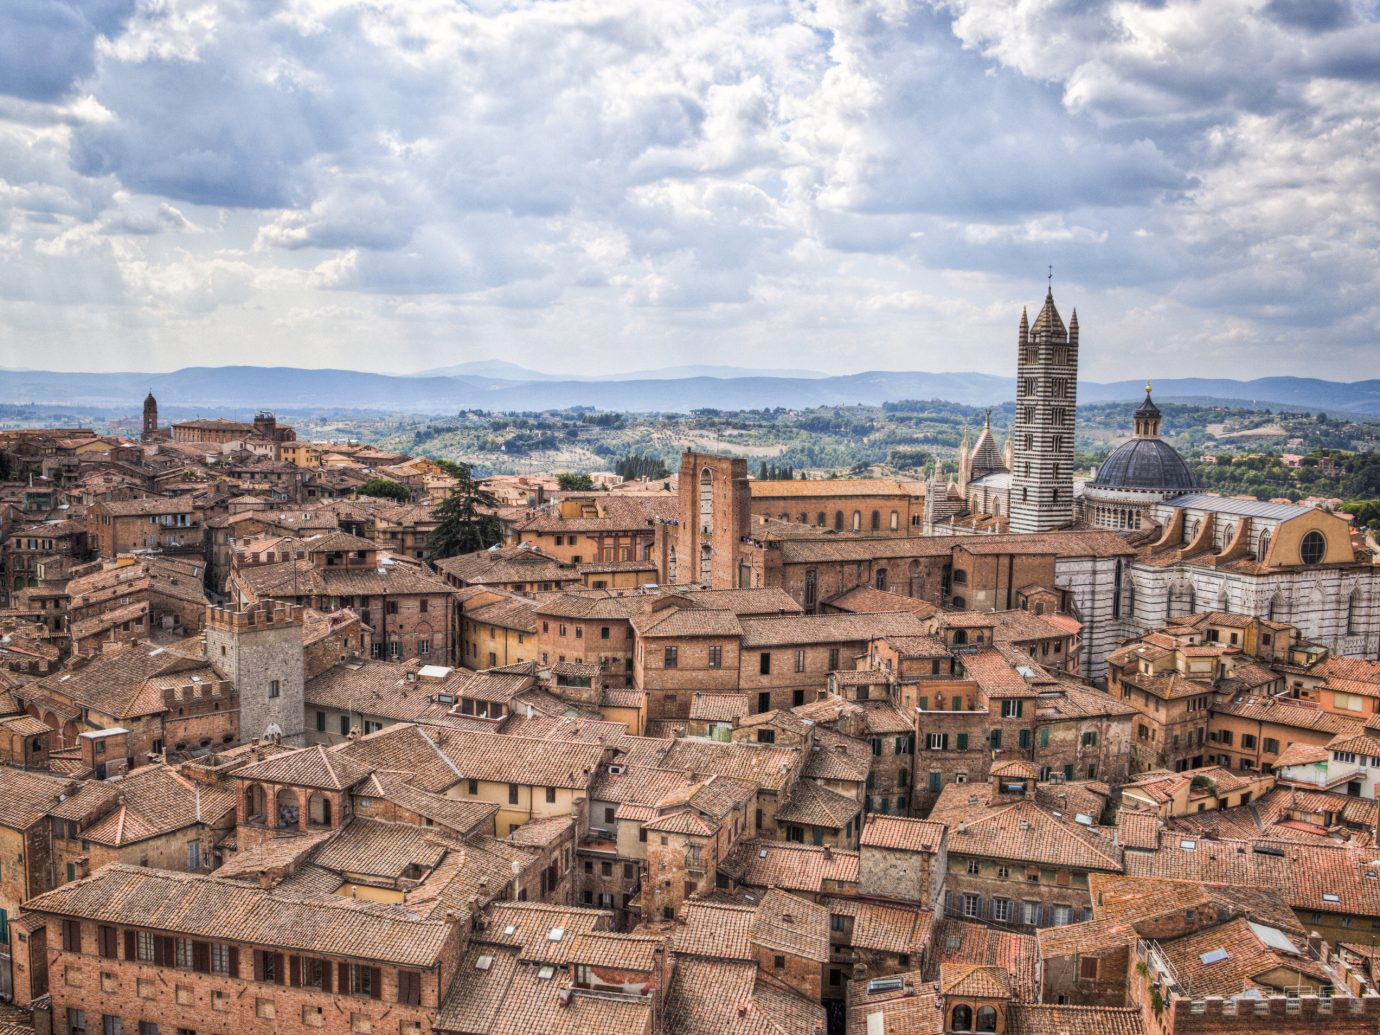 Italy Trip Ideas sky City landmark Town historic site urban area cityscape medieval architecture ancient history cloud tower history skyline Village middle ages bird's eye view panorama unesco world heritage site tourism building horizon roof